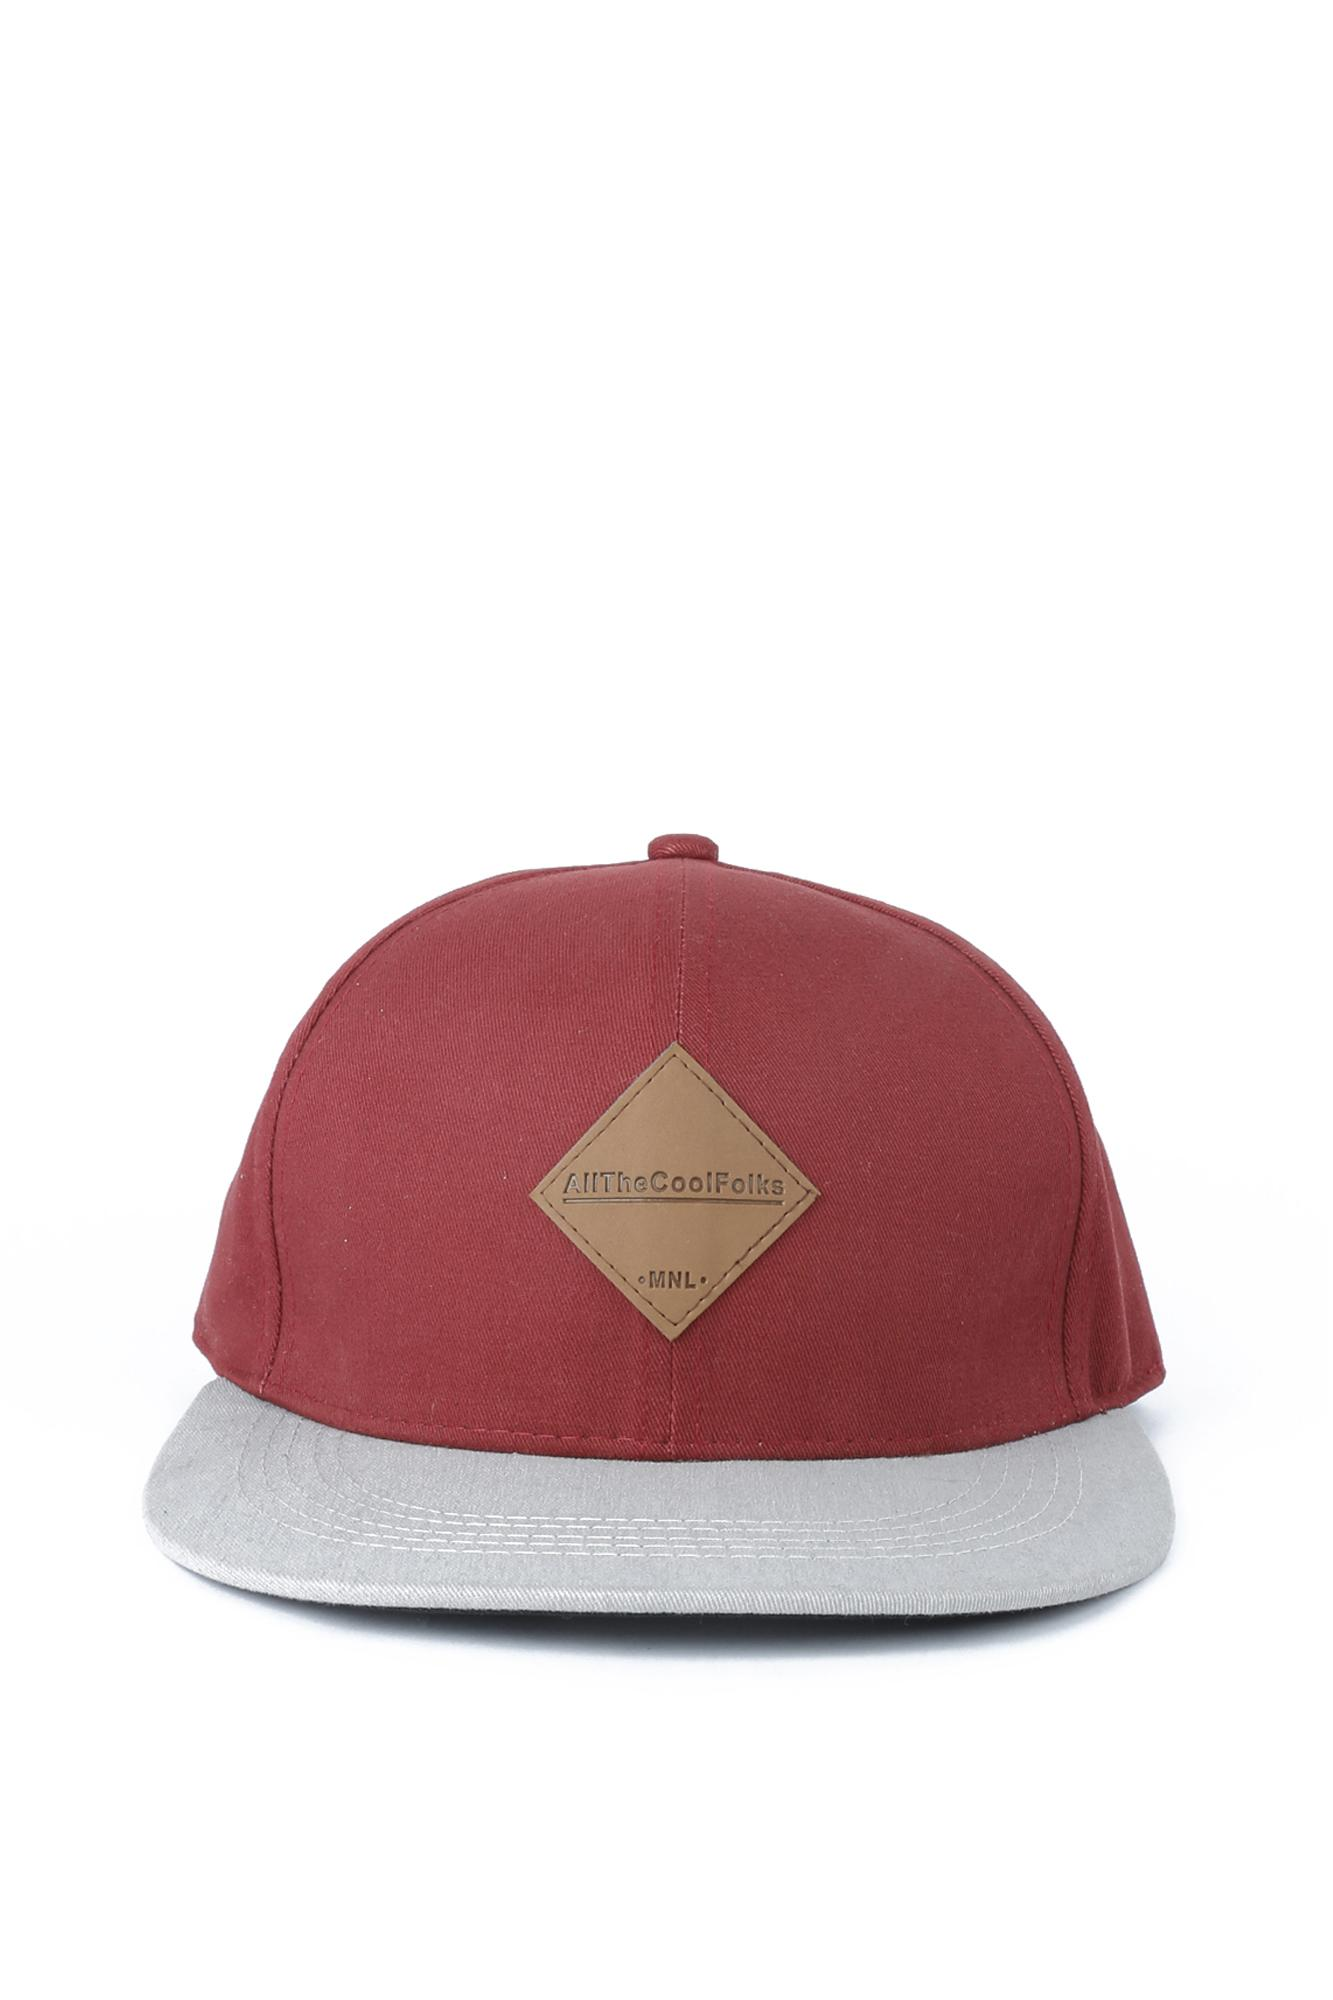 ddef1482621 Penshoppe Baseball Cap With Patch (Maroon) Philippines